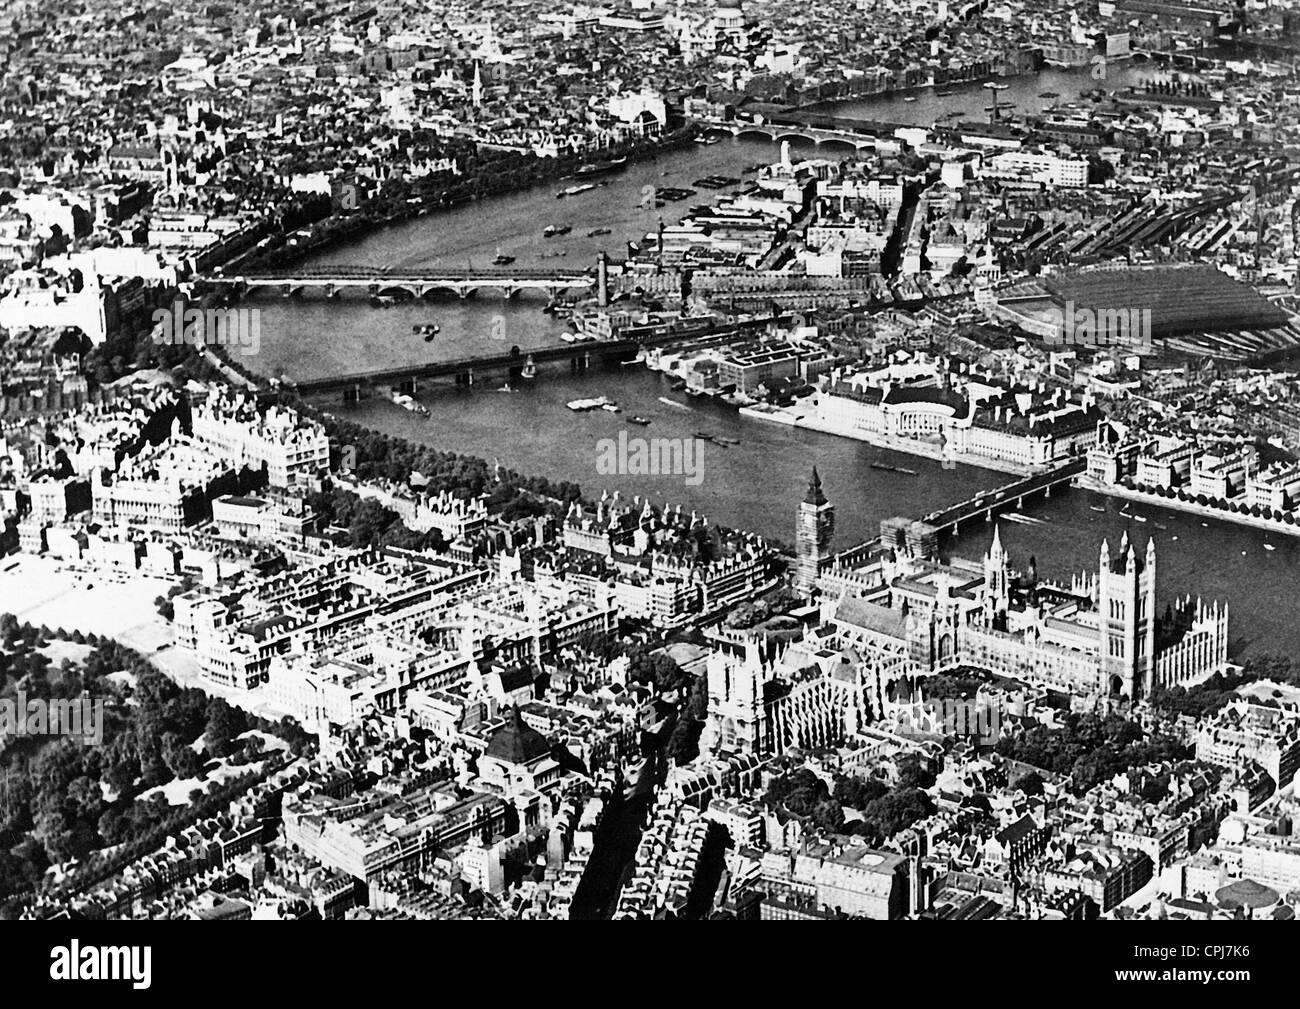 City view of London - Stock Image